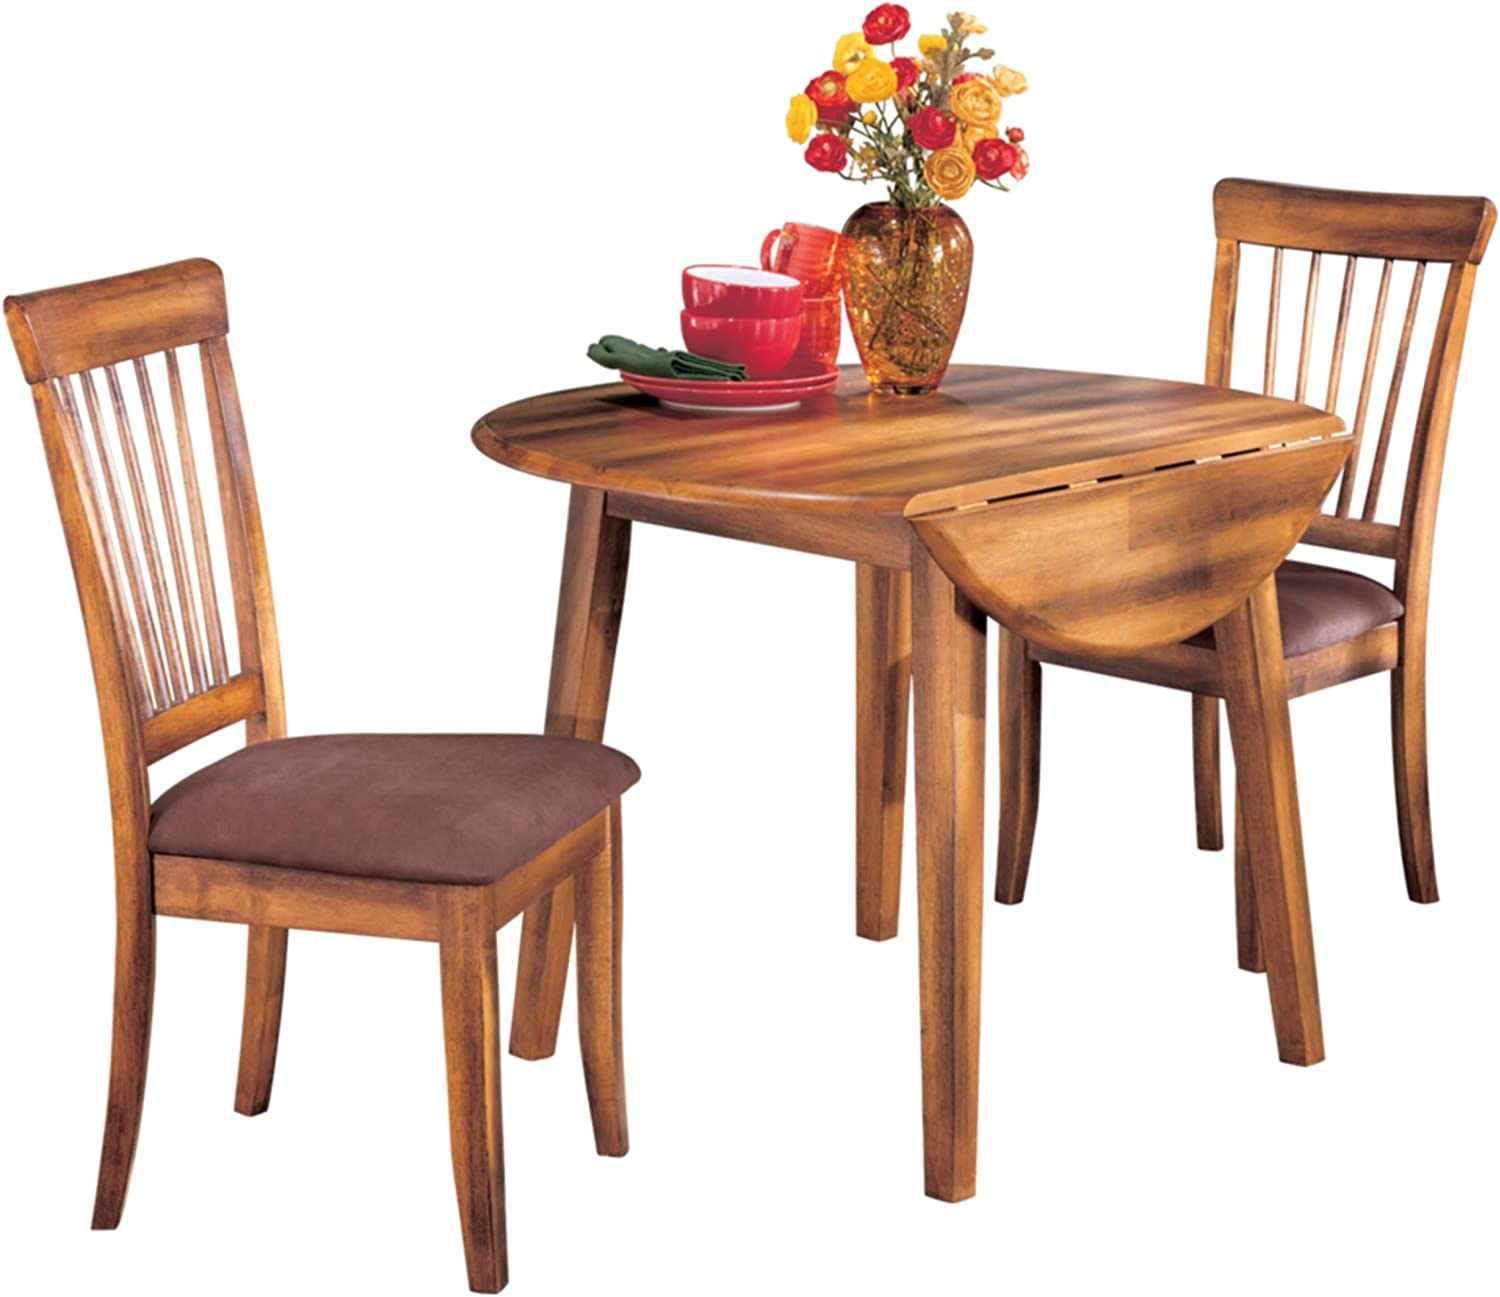 Amazon Com Signature Design By Ashley Berringer Dining Room Drop Leaf Table Rustic Brown Tables